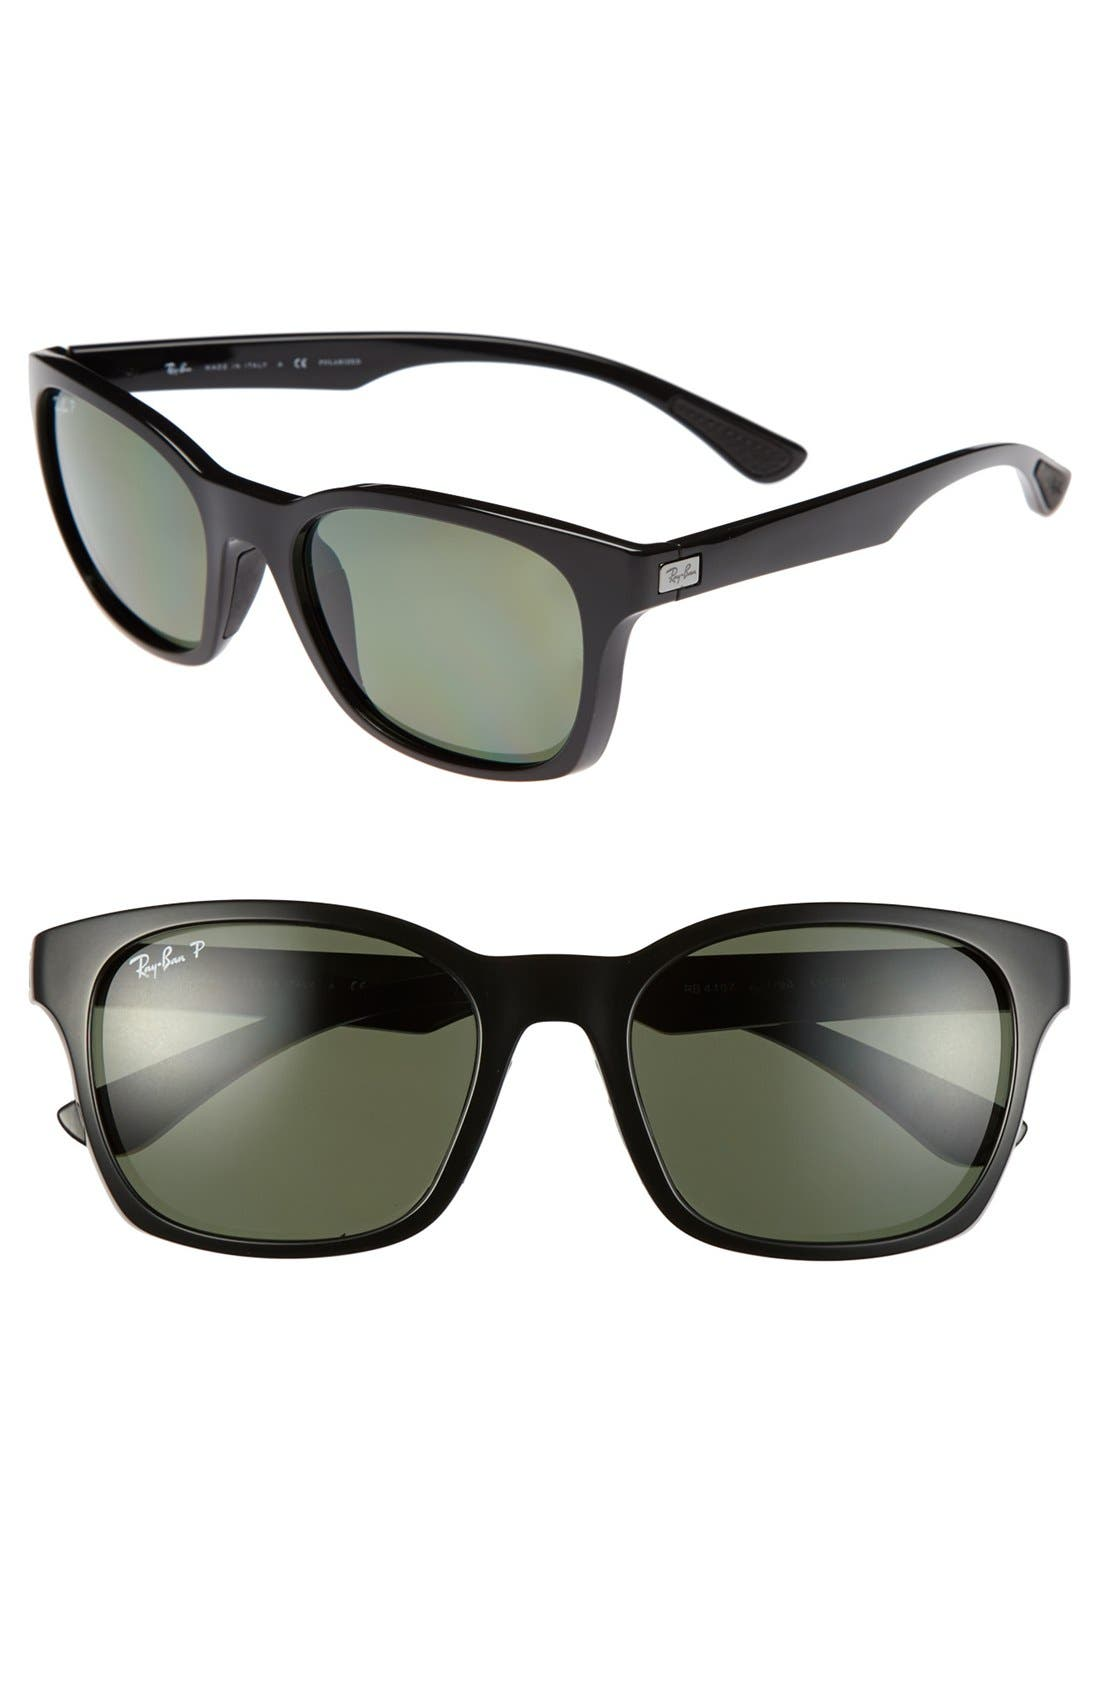 Main Image - Ray-Ban 56mm Polarized Square Sunglasses